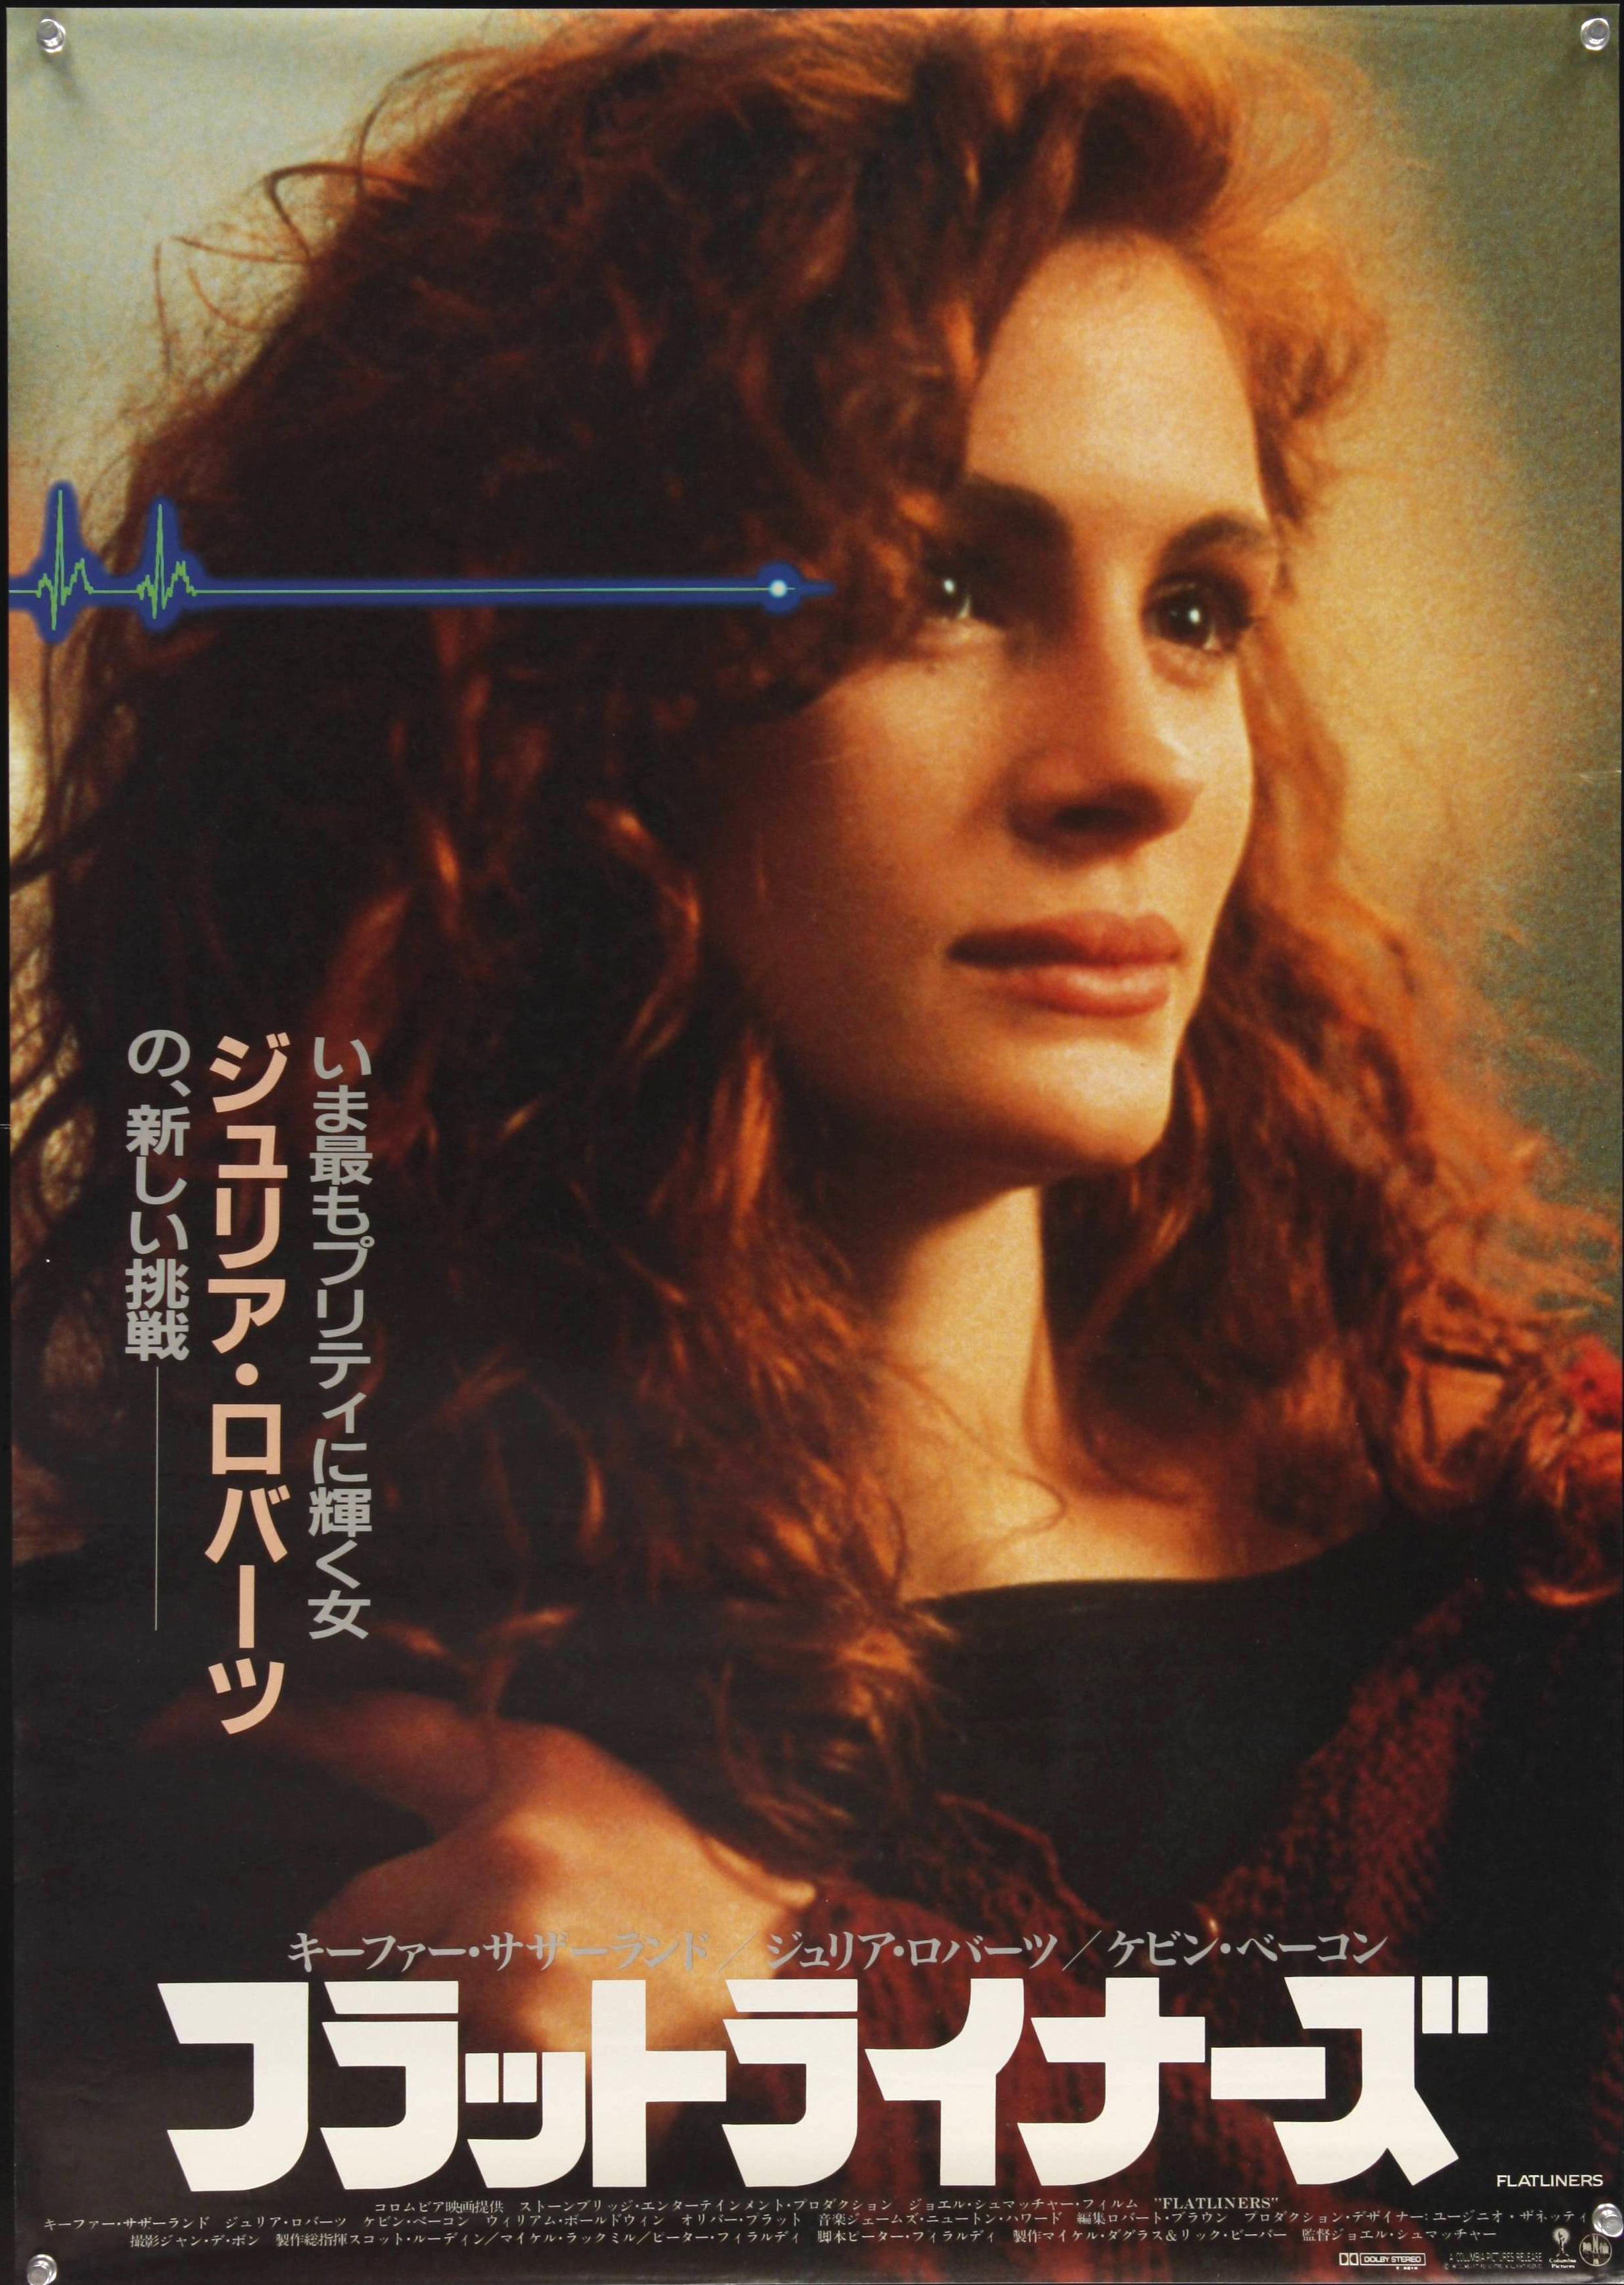 Flatliners Japanese poster